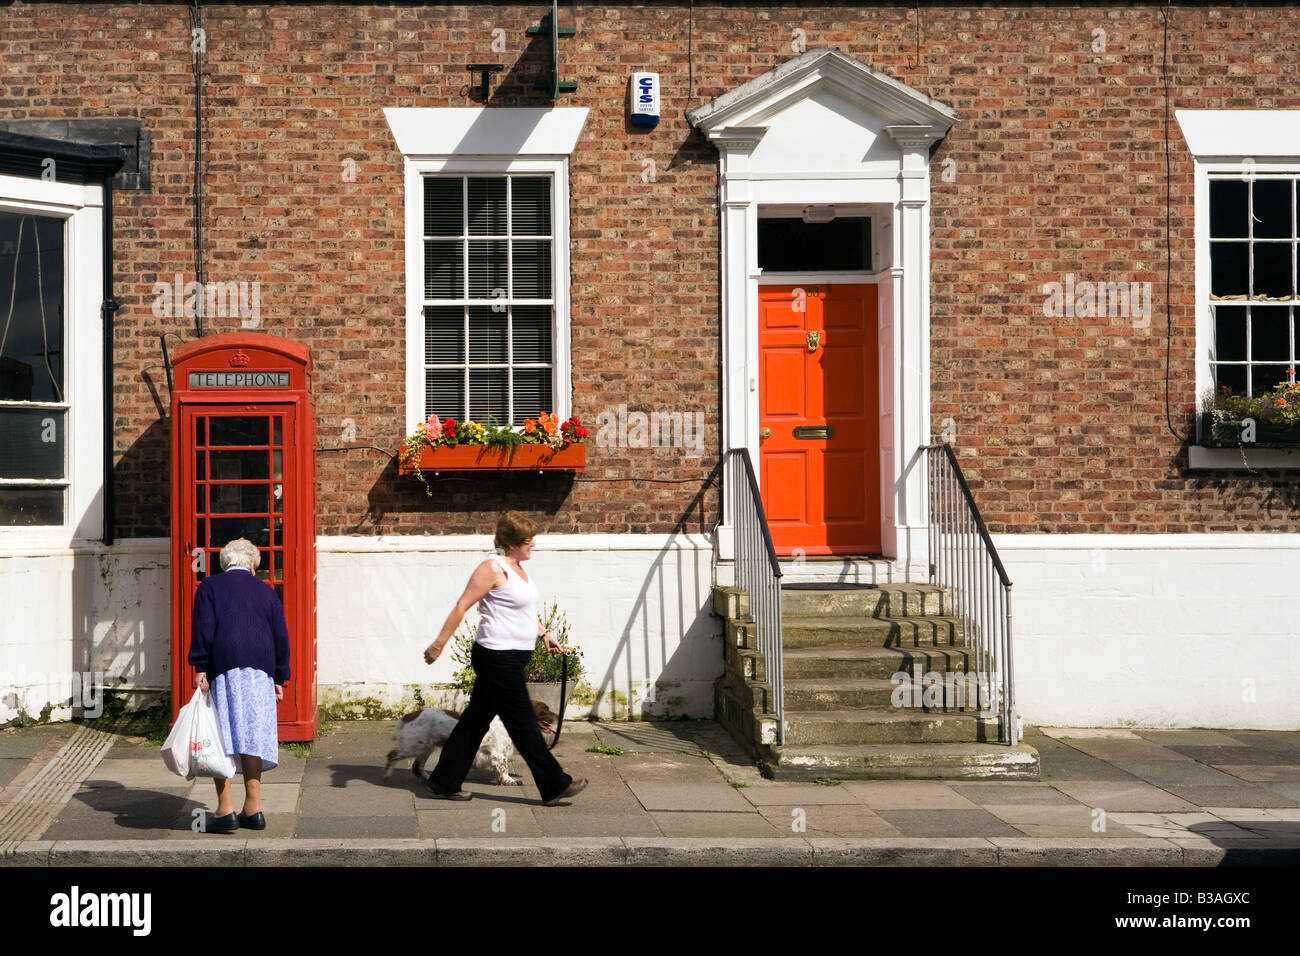 UK Cheshire Tarporley High Street K6 phone box outside former post office near red painted front door - Stock Image